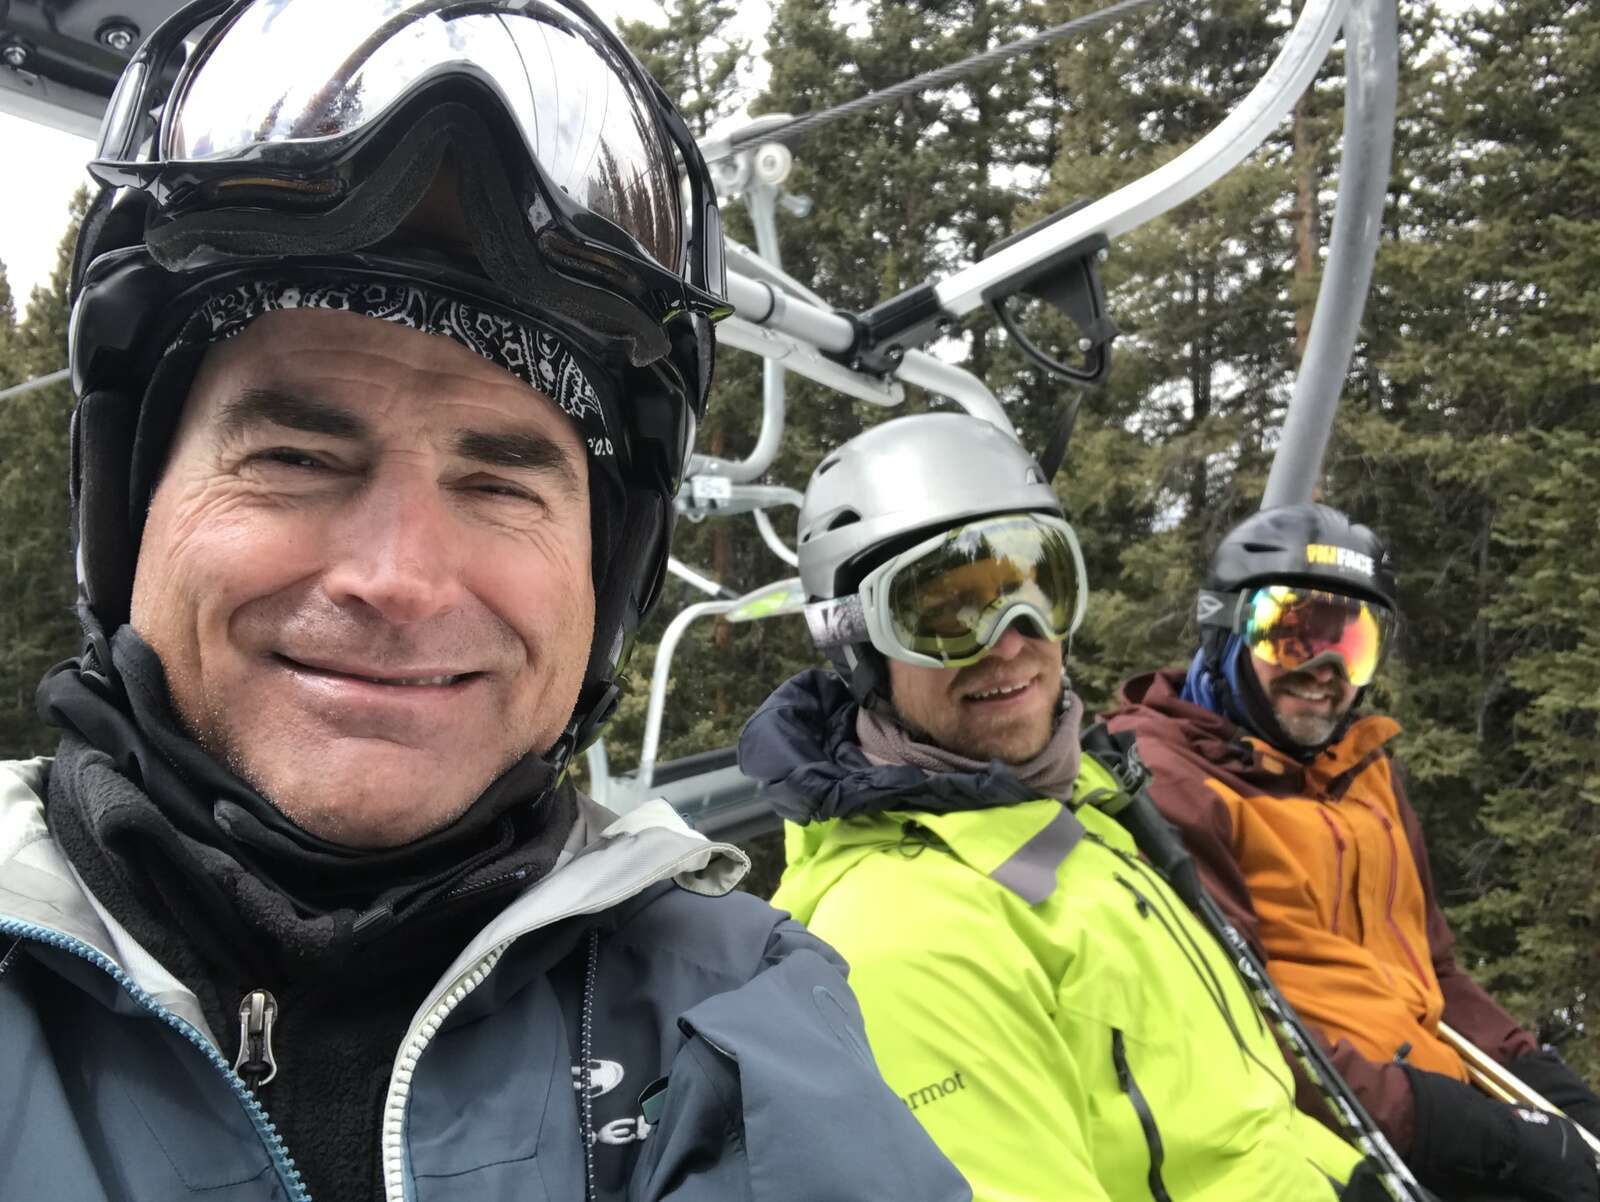 Lone Tree man skis 12.4 million vertical feet this winter at Vail Resorts   SummitDaily.com